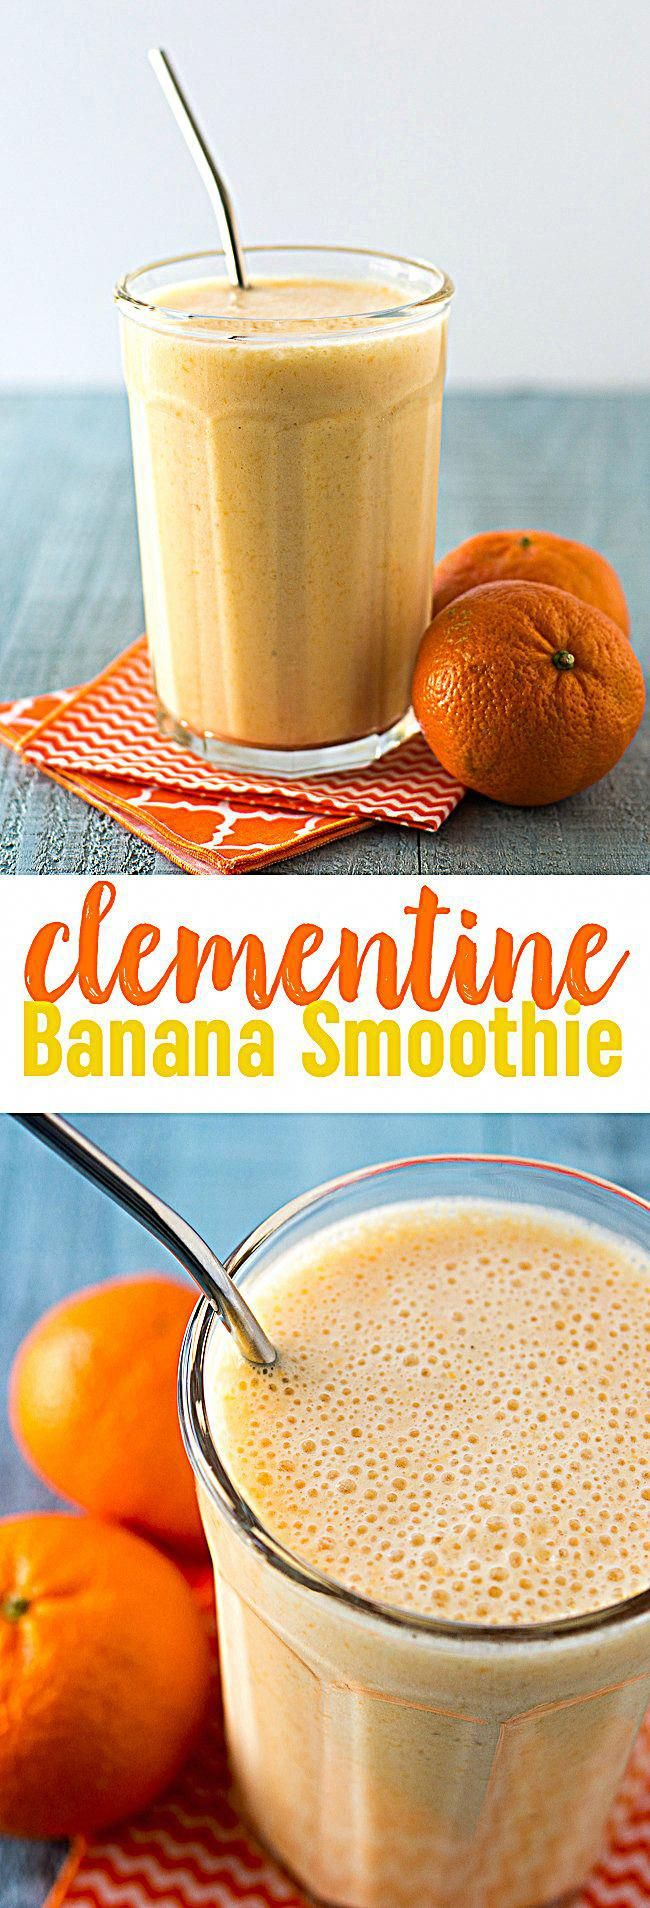 Clementine Banana Smoothie This bright, sunny smoothie is sweet and delicious. - Clementine Banana Smoothie Recipe   Orange Banana Smoothie   Sunshine Smoothie Recipe   Vitamin C Smoothie   Cuties   Mandarin #foodielife #chicken #foodquotes #foodismedicine #foodstagram #foodphotograph #healthyfood #Foods4Thought #photography #FoodStylist #food52 #delicious #foodfestival #italianfood #fooddelivery #smoothierecipeshealthy